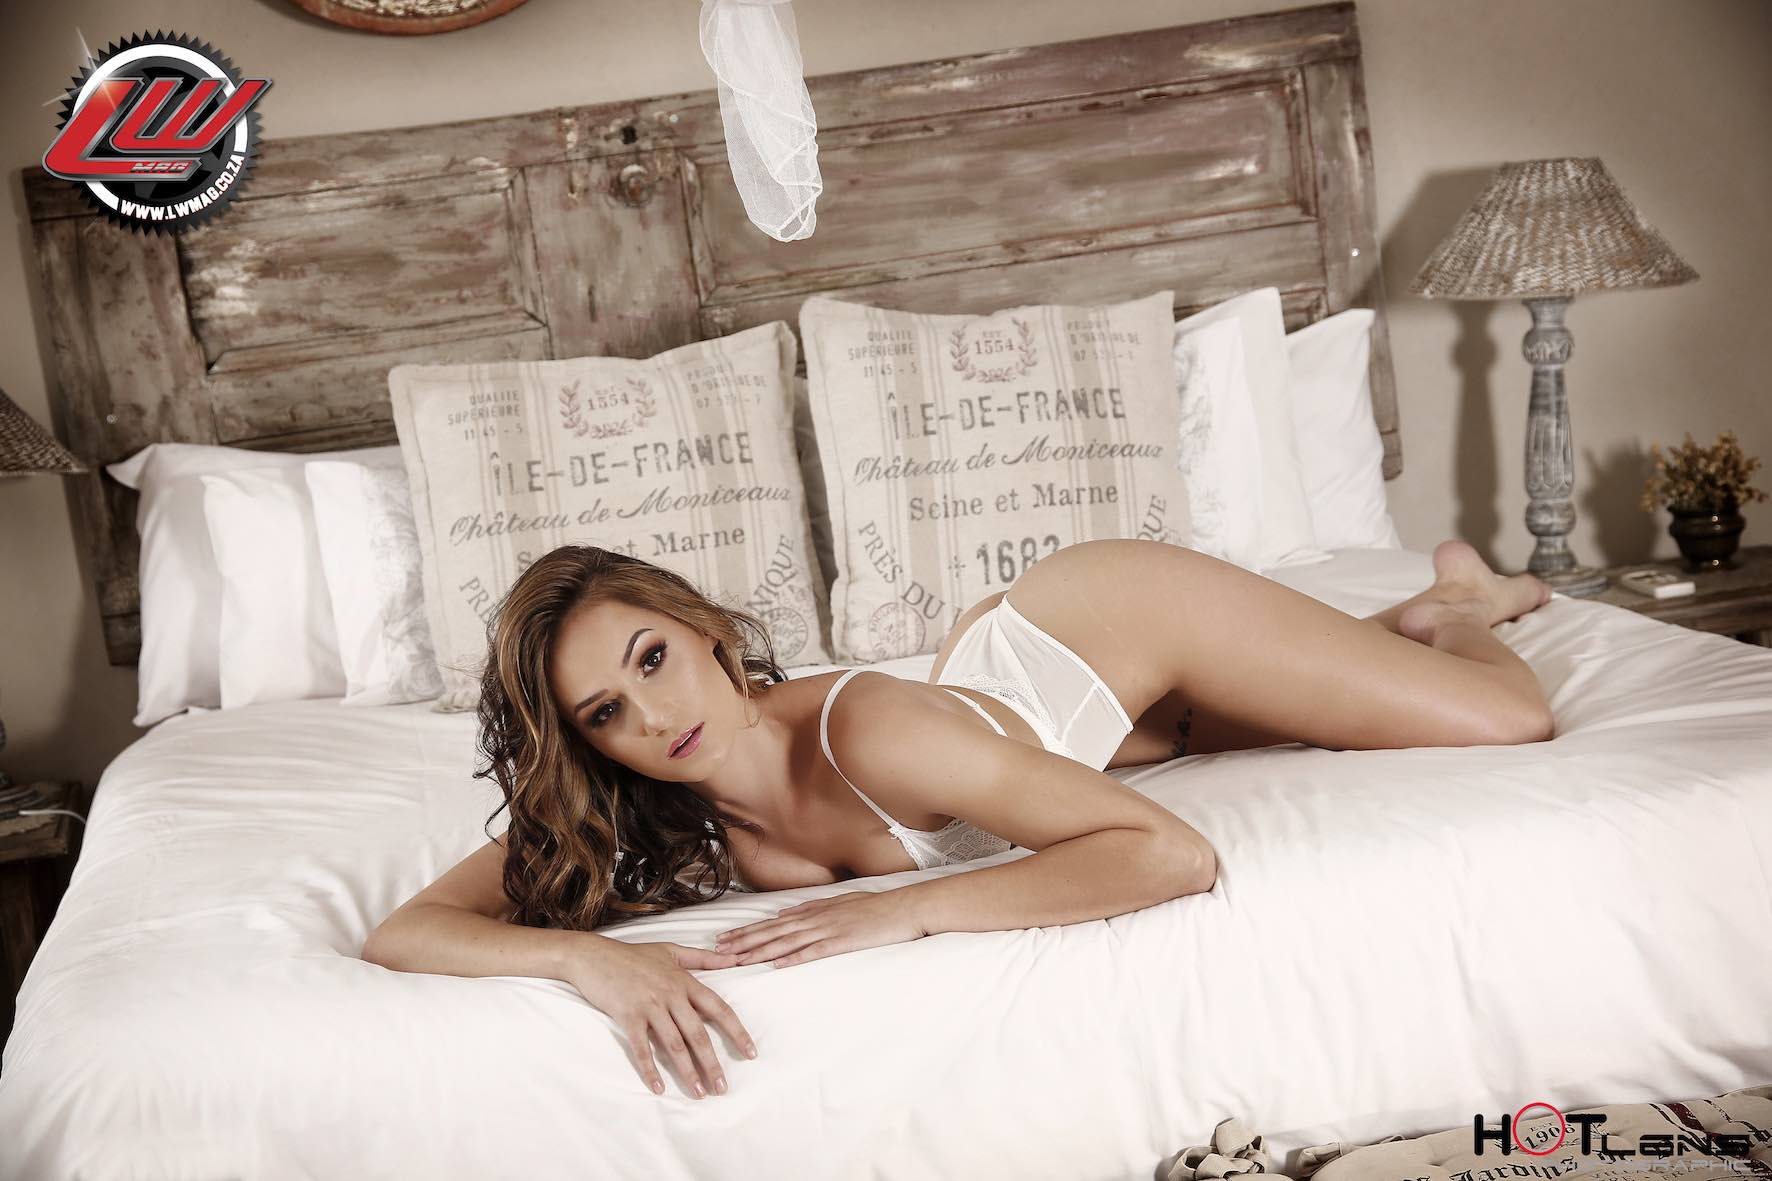 Our South African Babes feature with Charne Botha